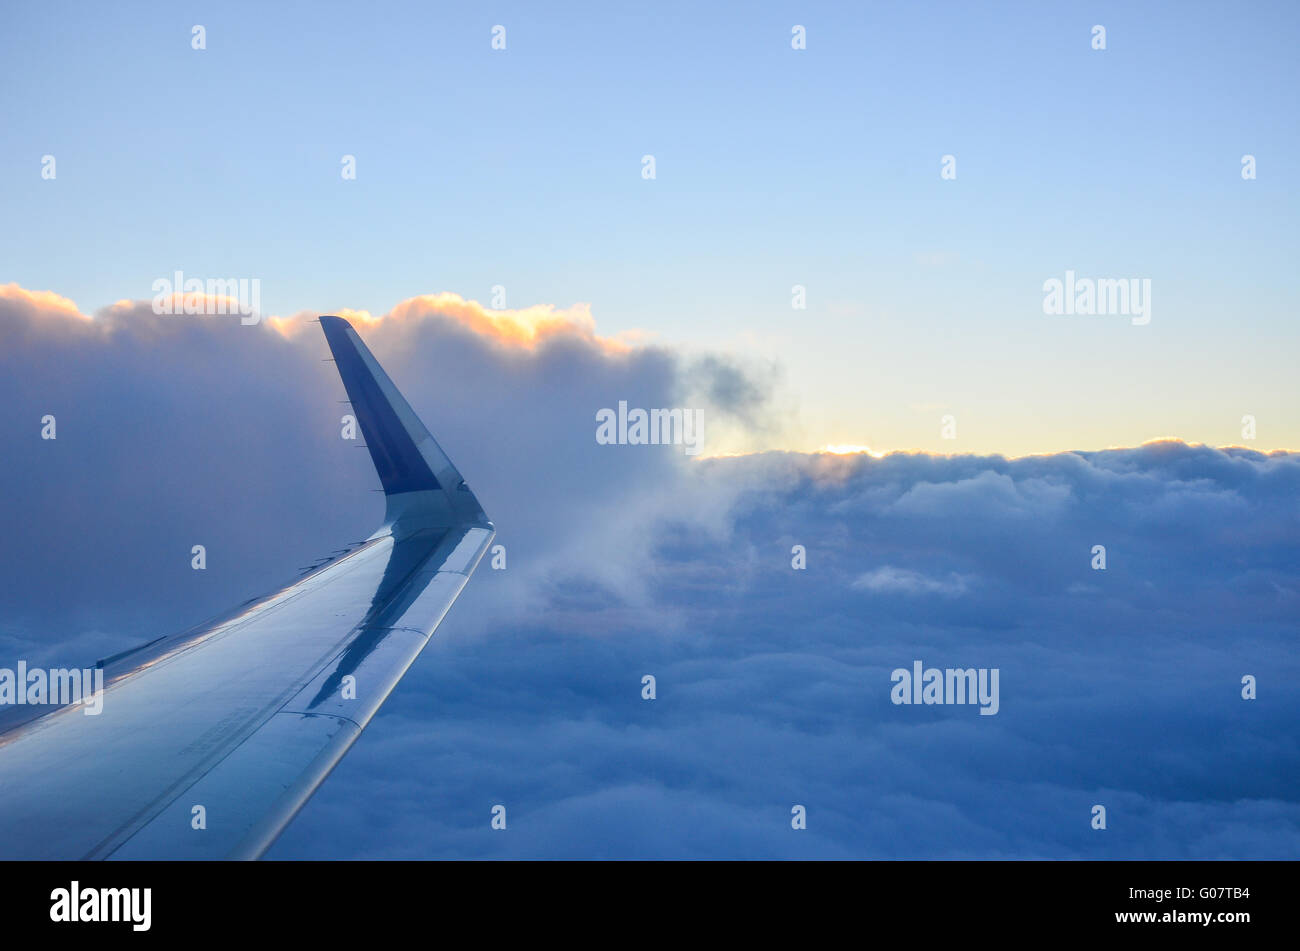 IndiGo Airlines flight window view of clouds with sunset orange lining. - Stock Image